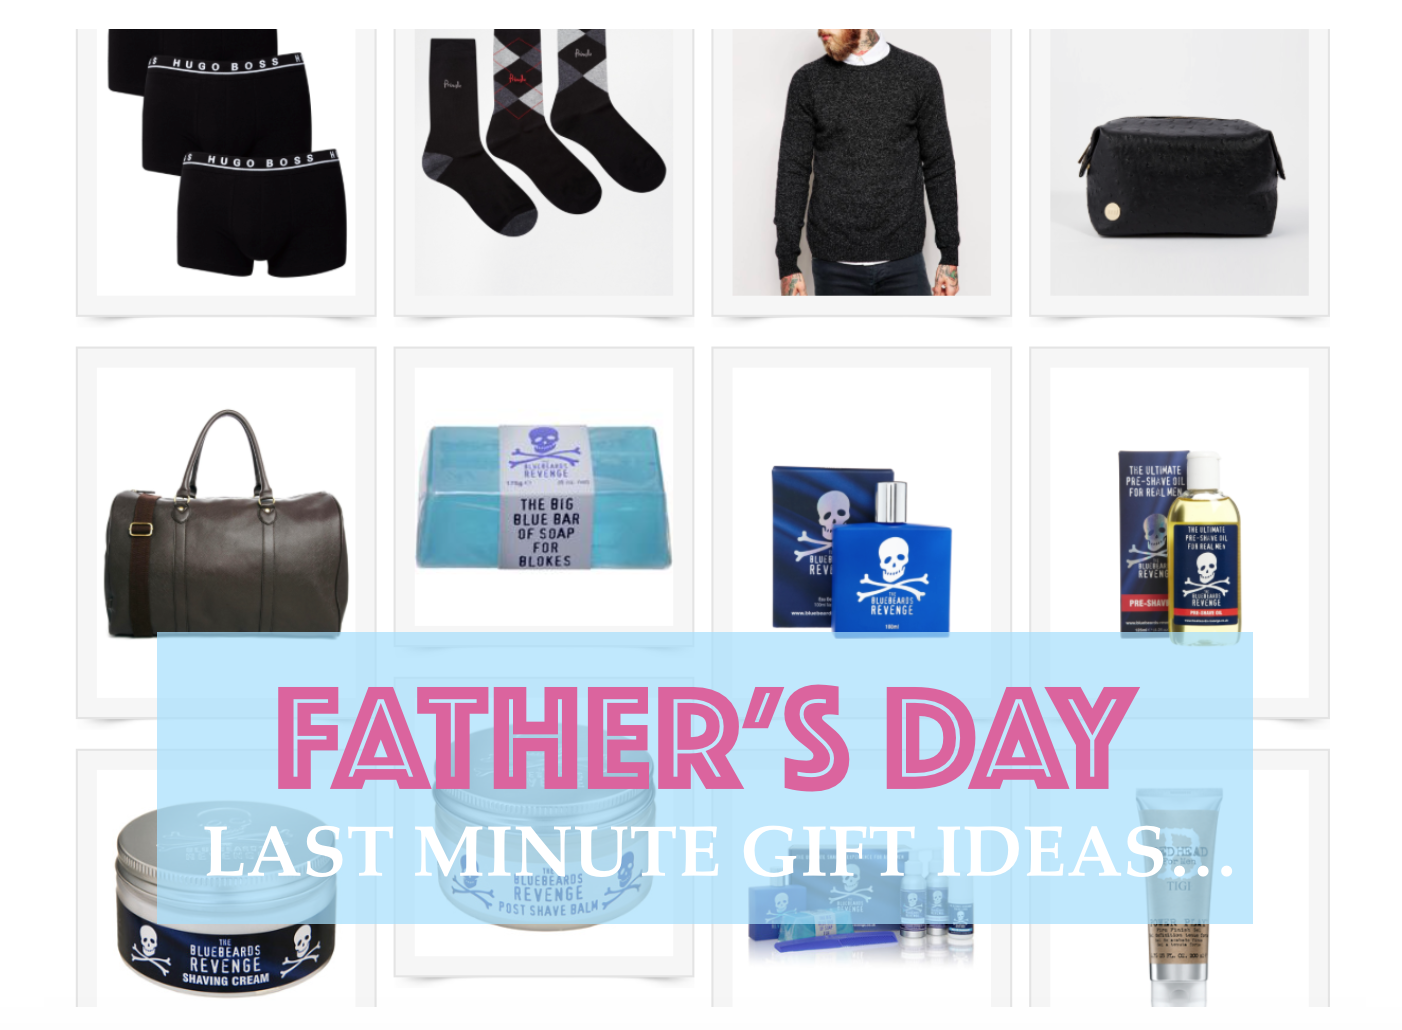 Uh oh... who forgot it's Father's Day this weekend? LAST MINUTE GIFT IDEAS!